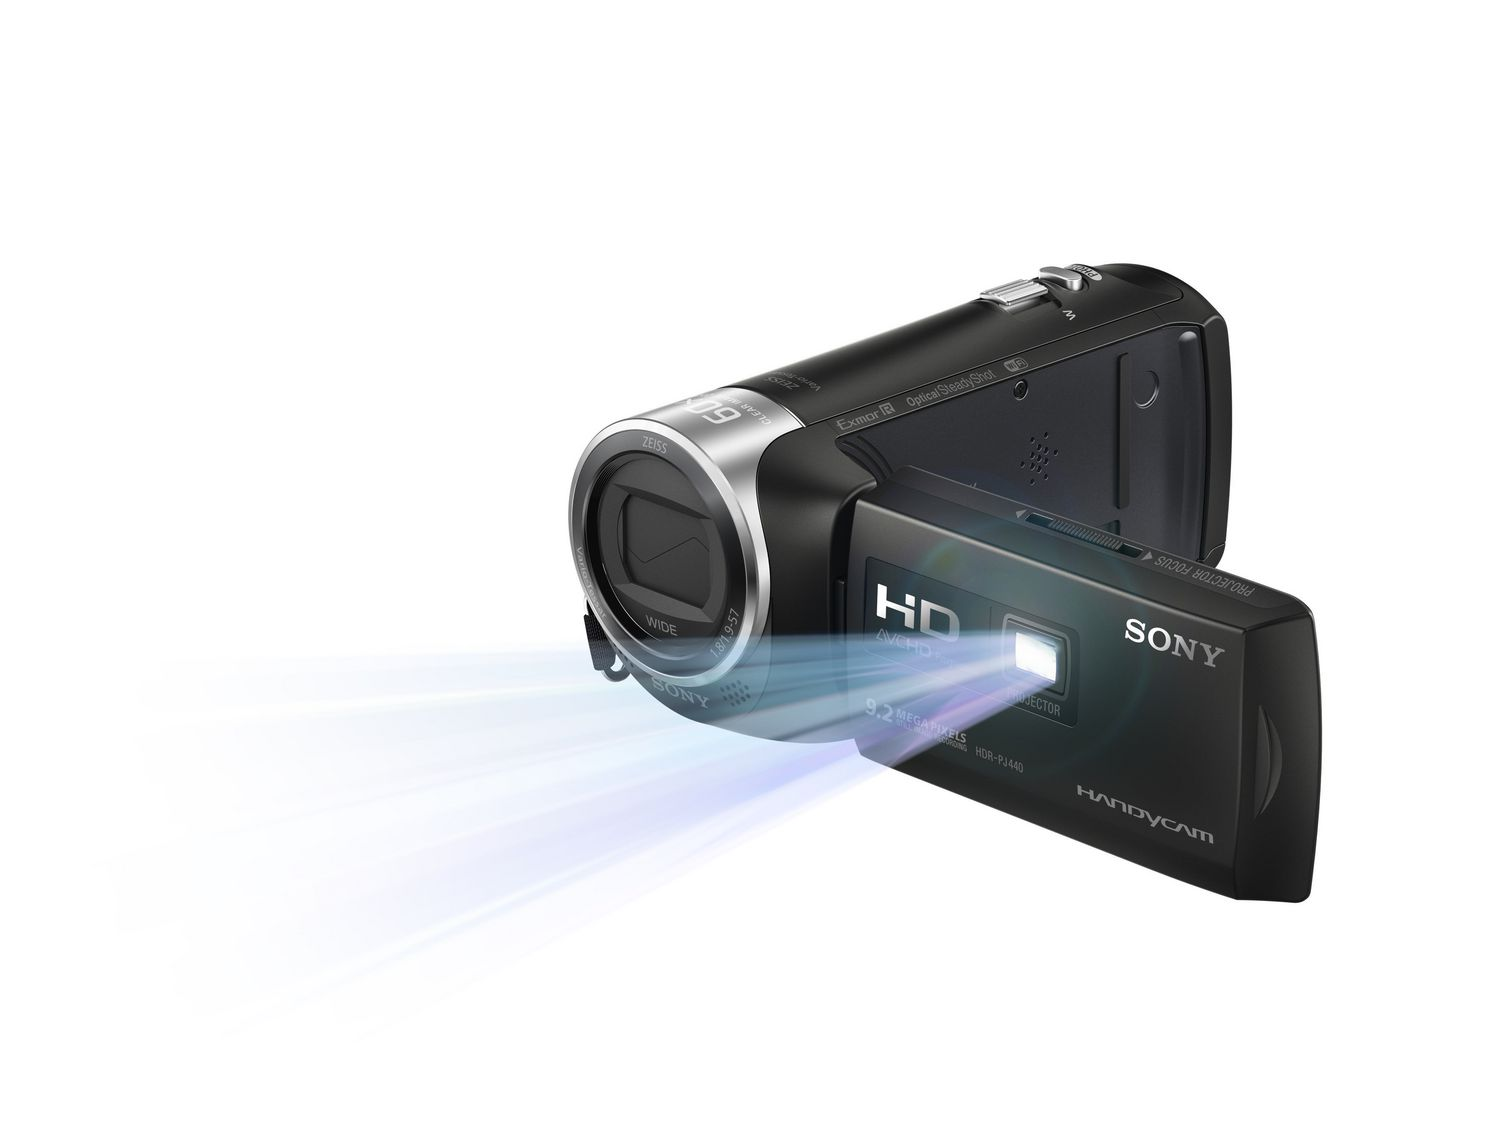 Camera Cameras For Sale At Walmart sony hdr handycam with built in projector pj440 walmart ca